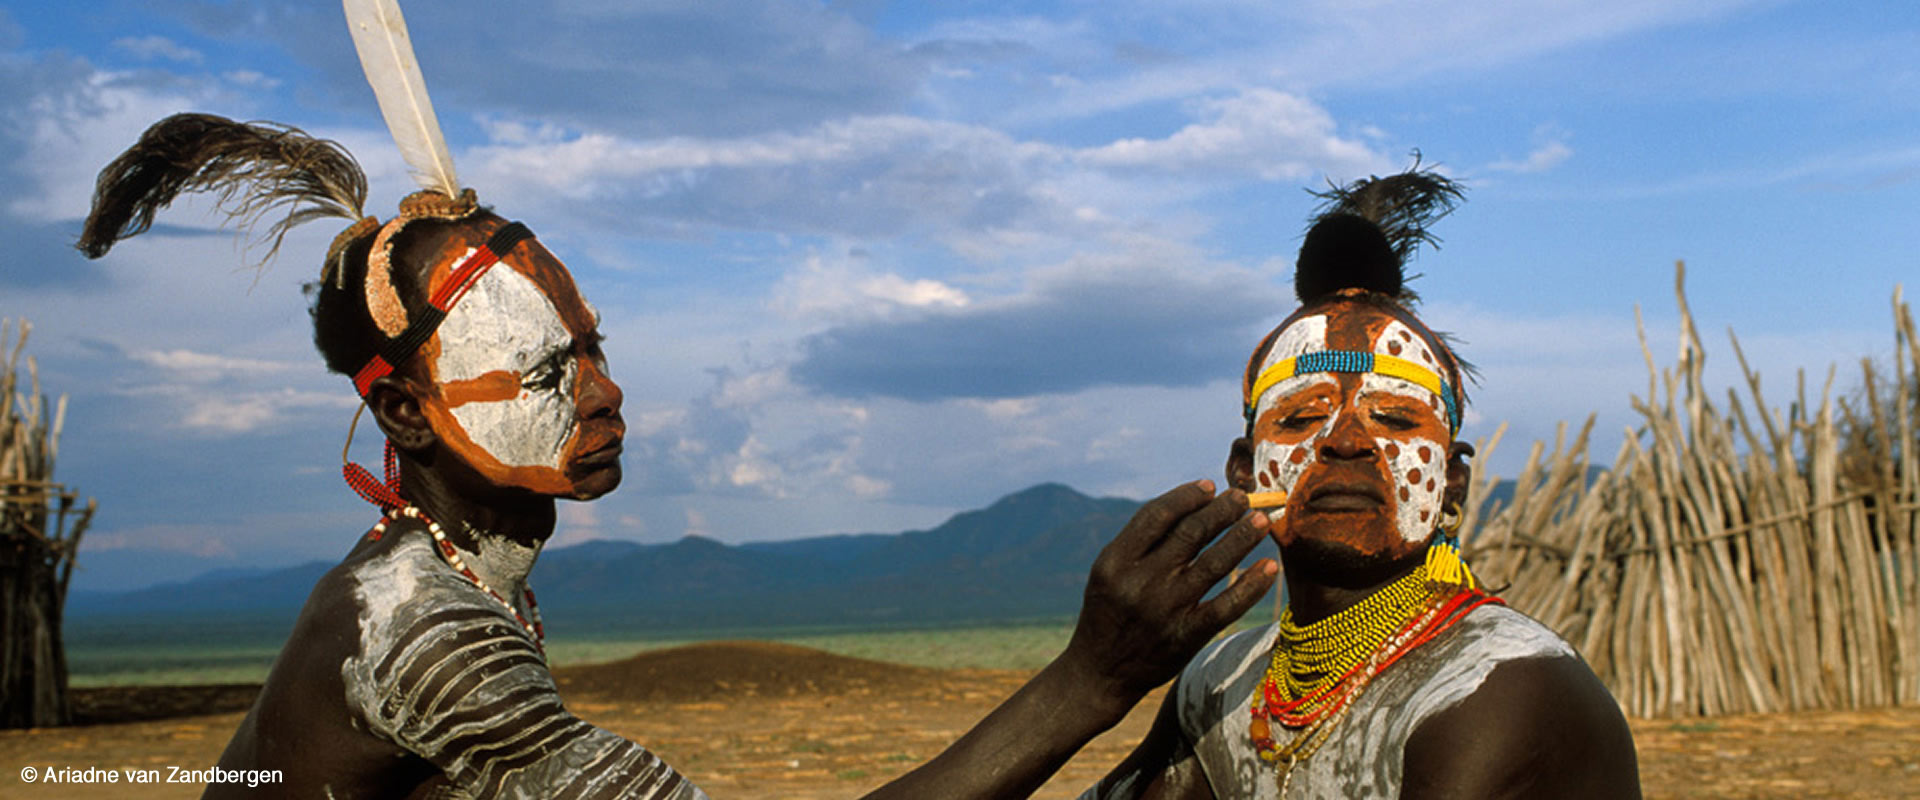 Ethiopia - Omo Tribes and the Far South - Africa Geographic